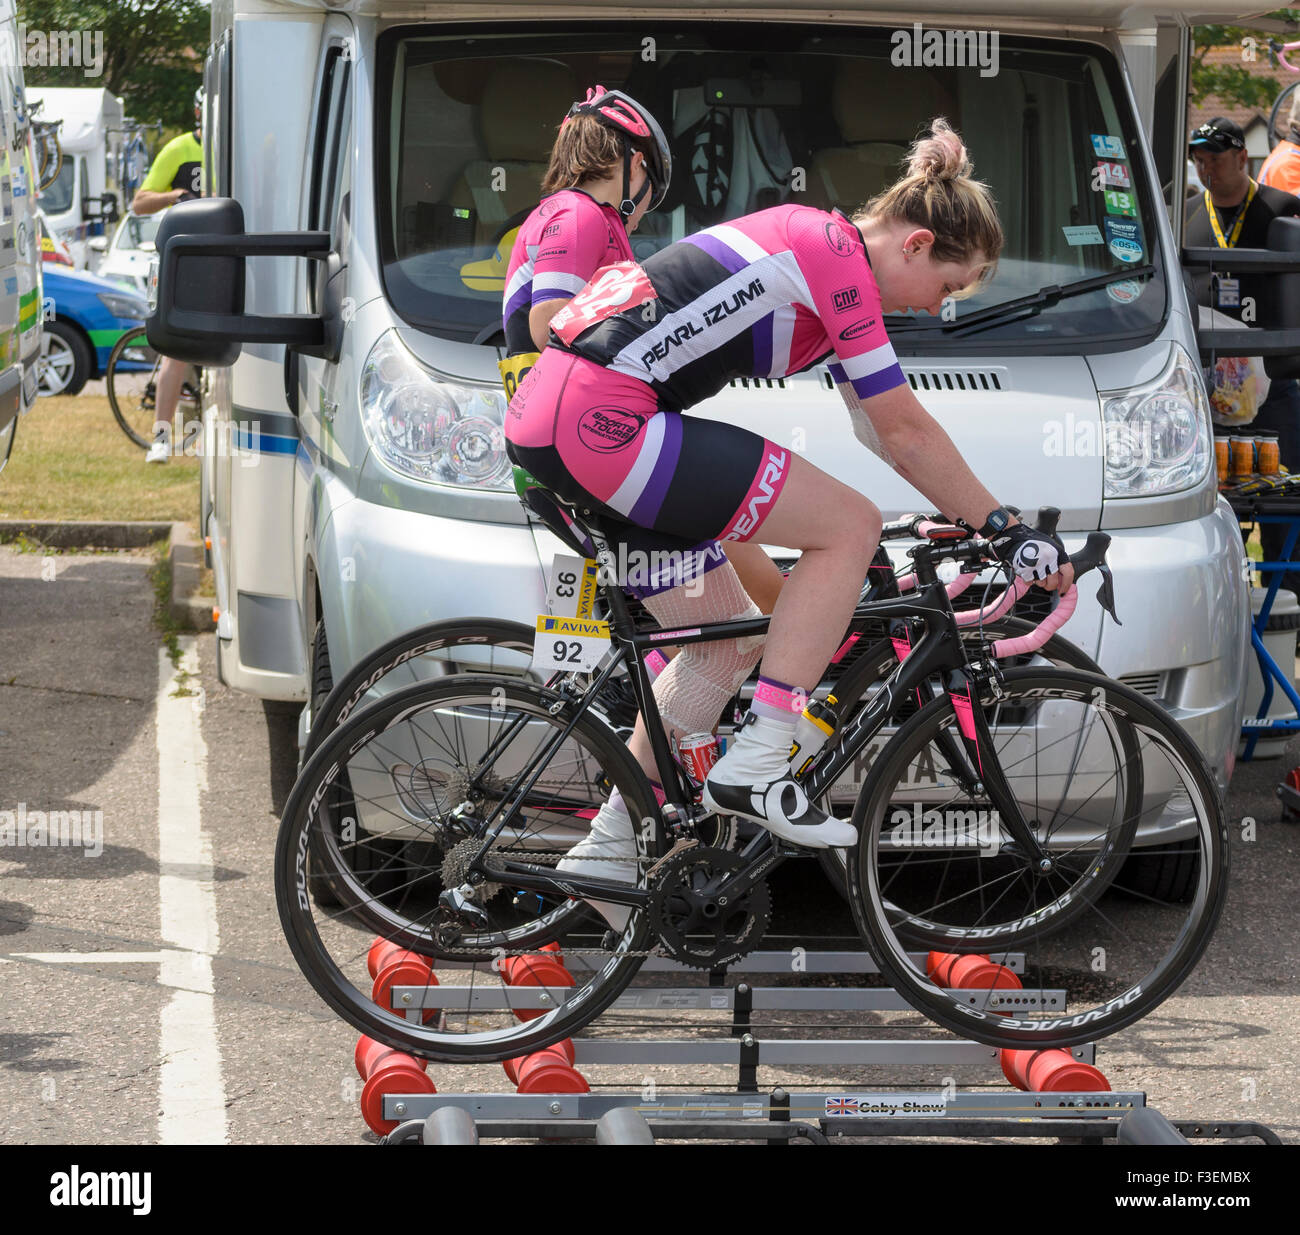 Two women cyclist warming up before the race, England UK. - Stock Image